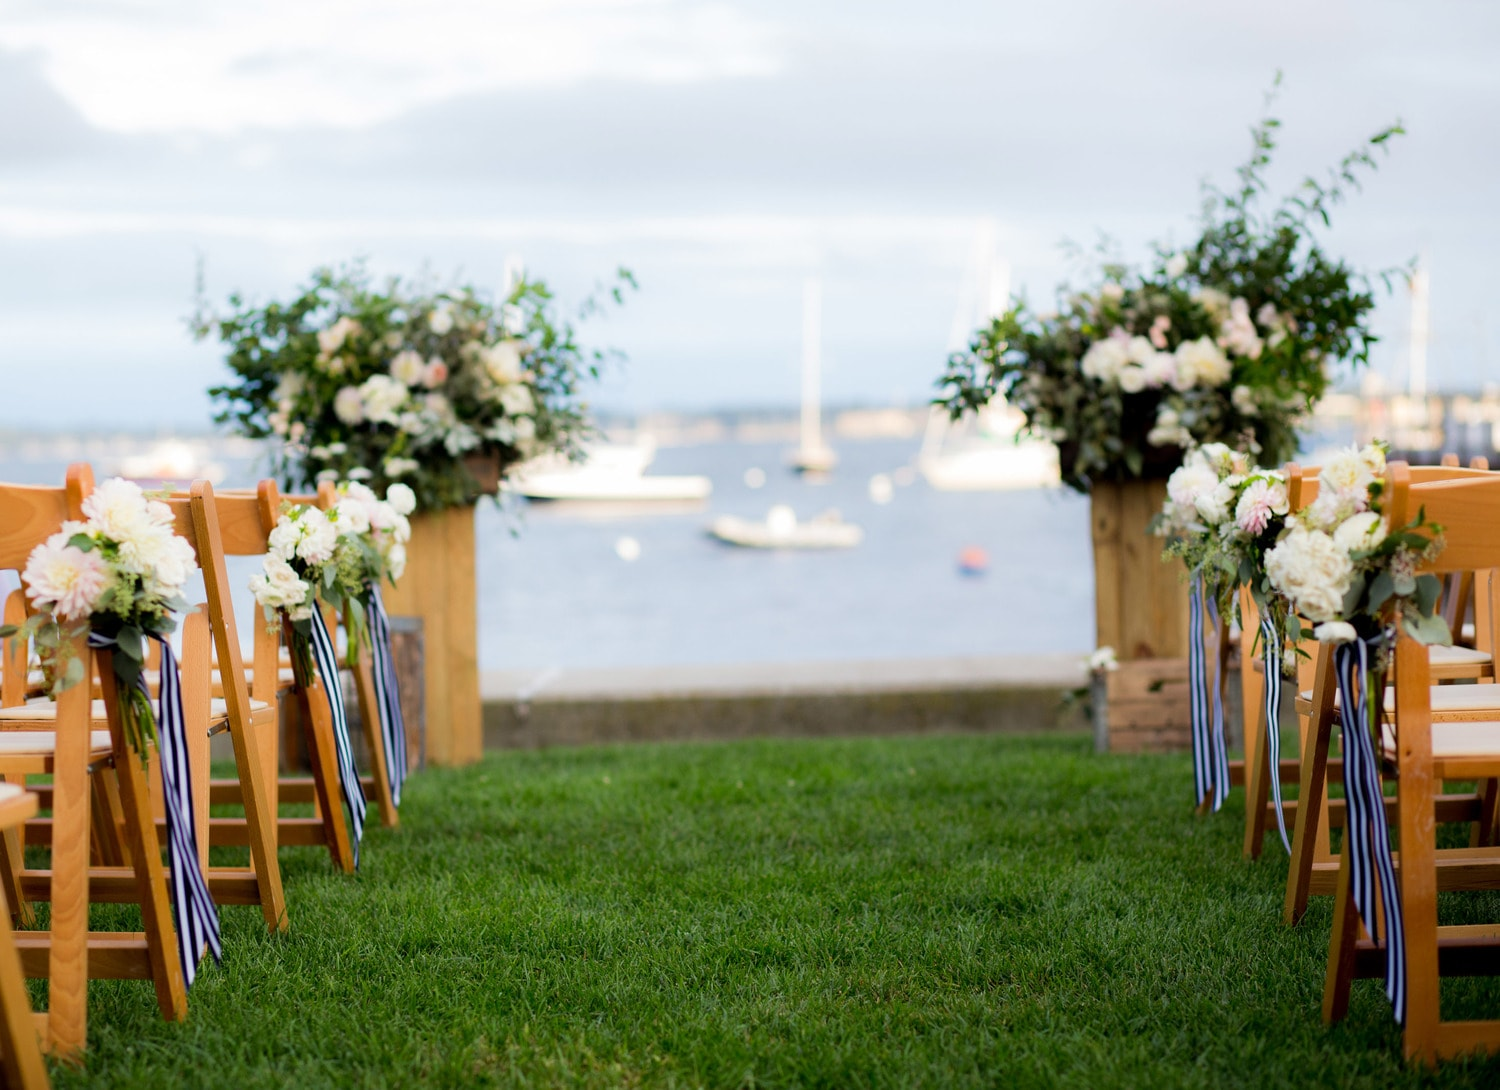 Conanicut Yacht Club R.I. Wedding With Julia & Brian - Wedding String Quartet Massachusetts